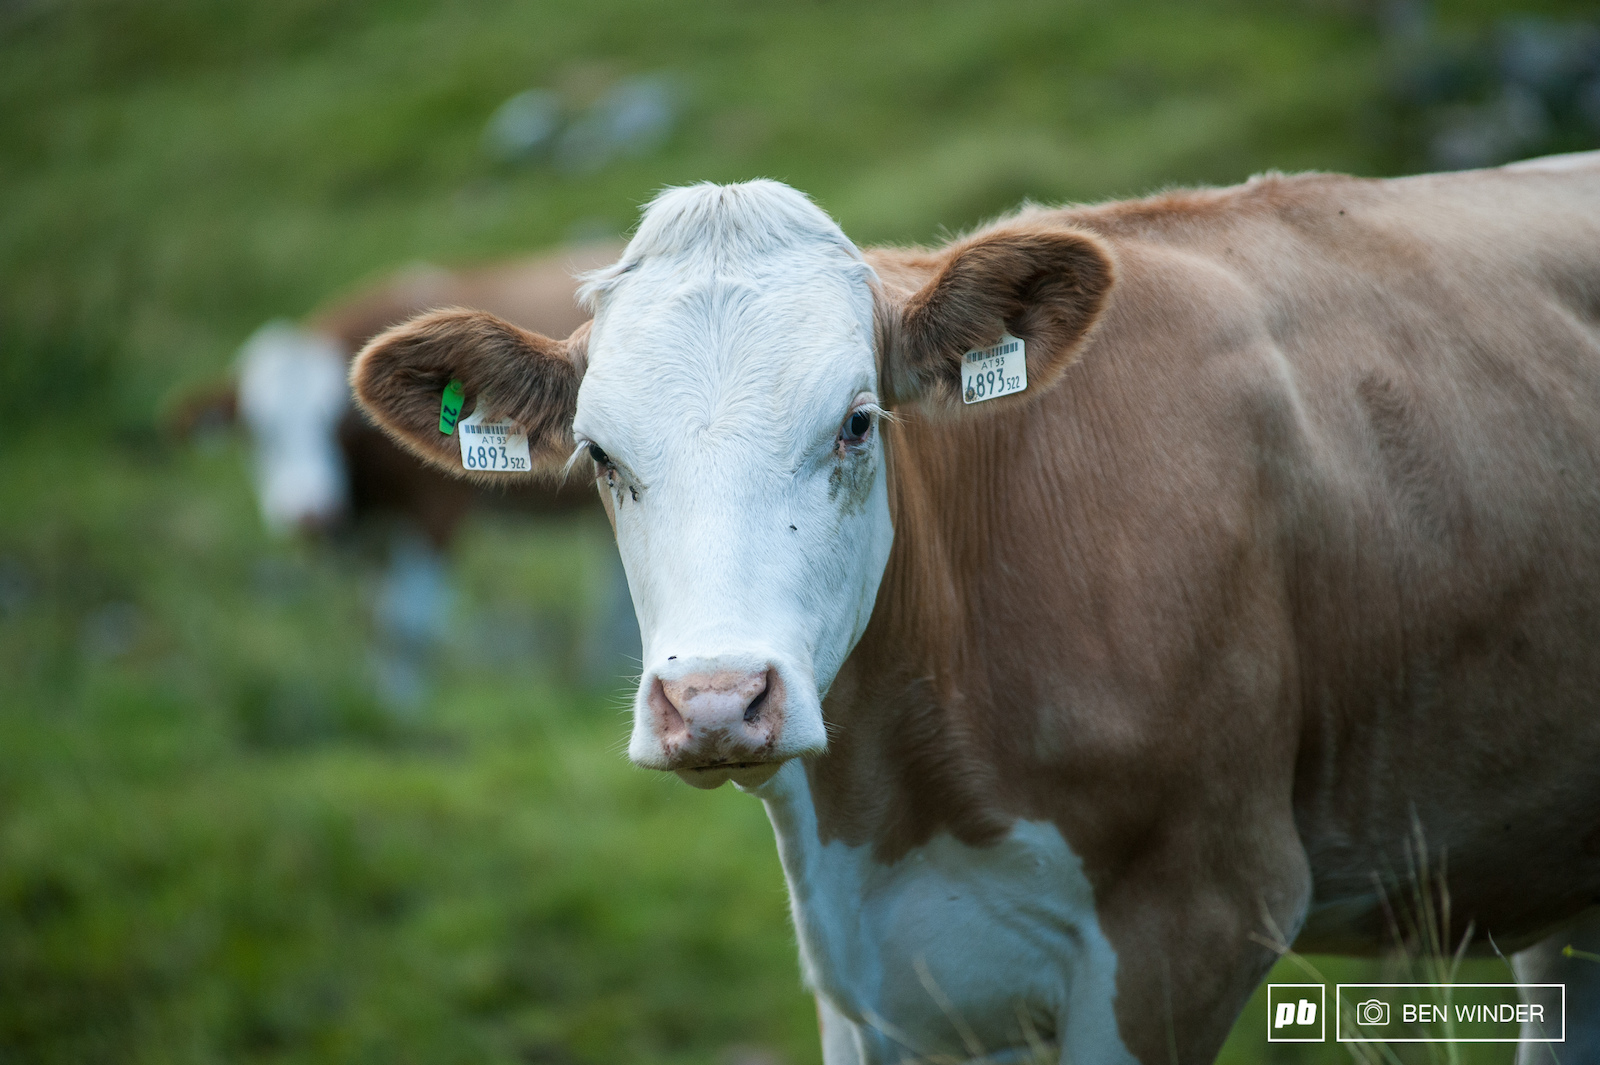 Alpine cows seem to be some of the most friendly cows.